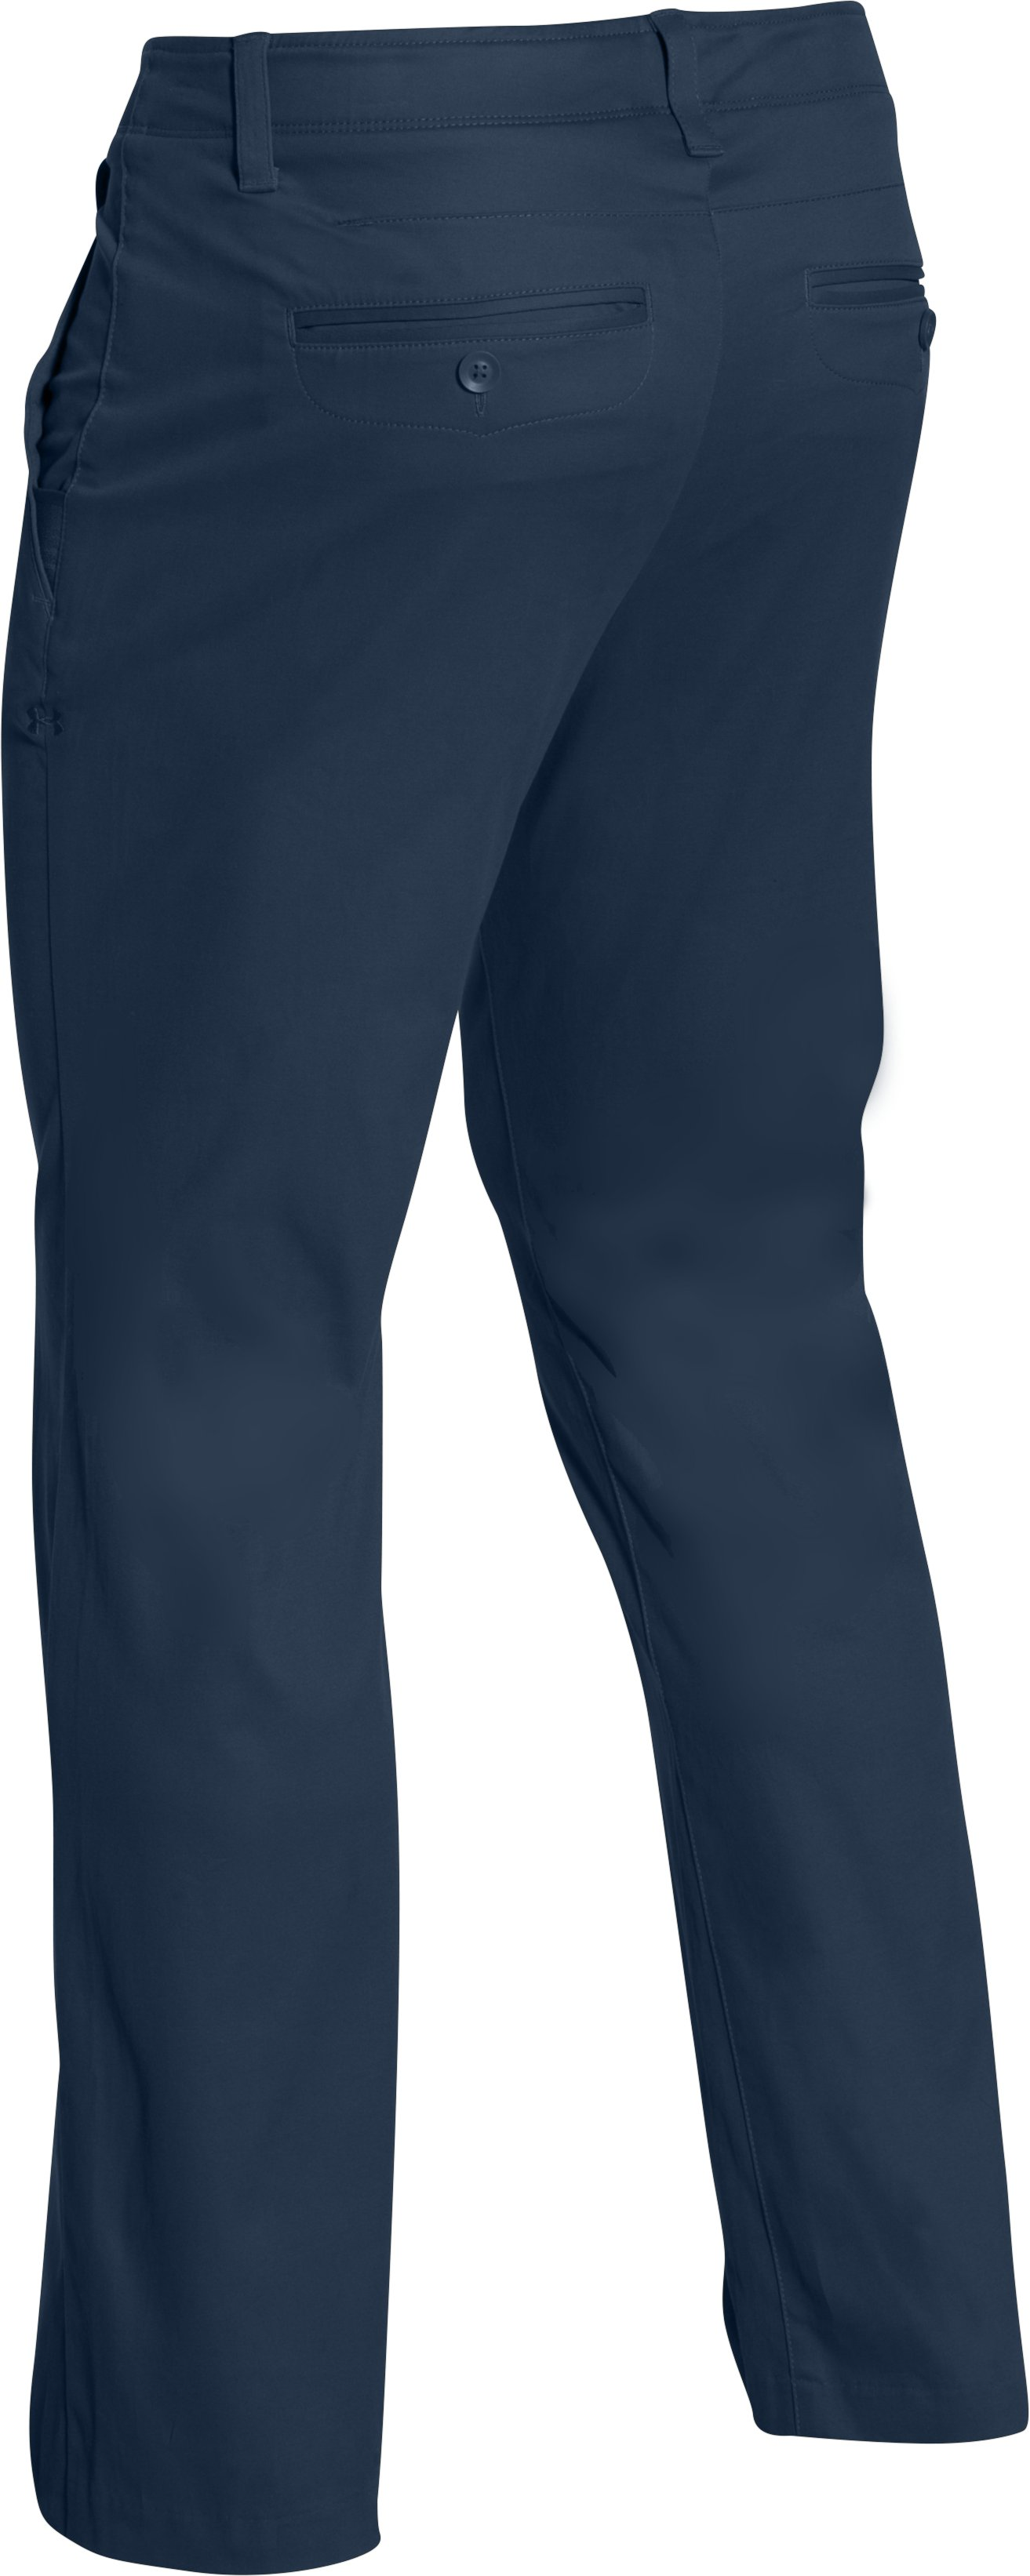 Men's UA Performance Chino — Straight Leg, Academy, undefined